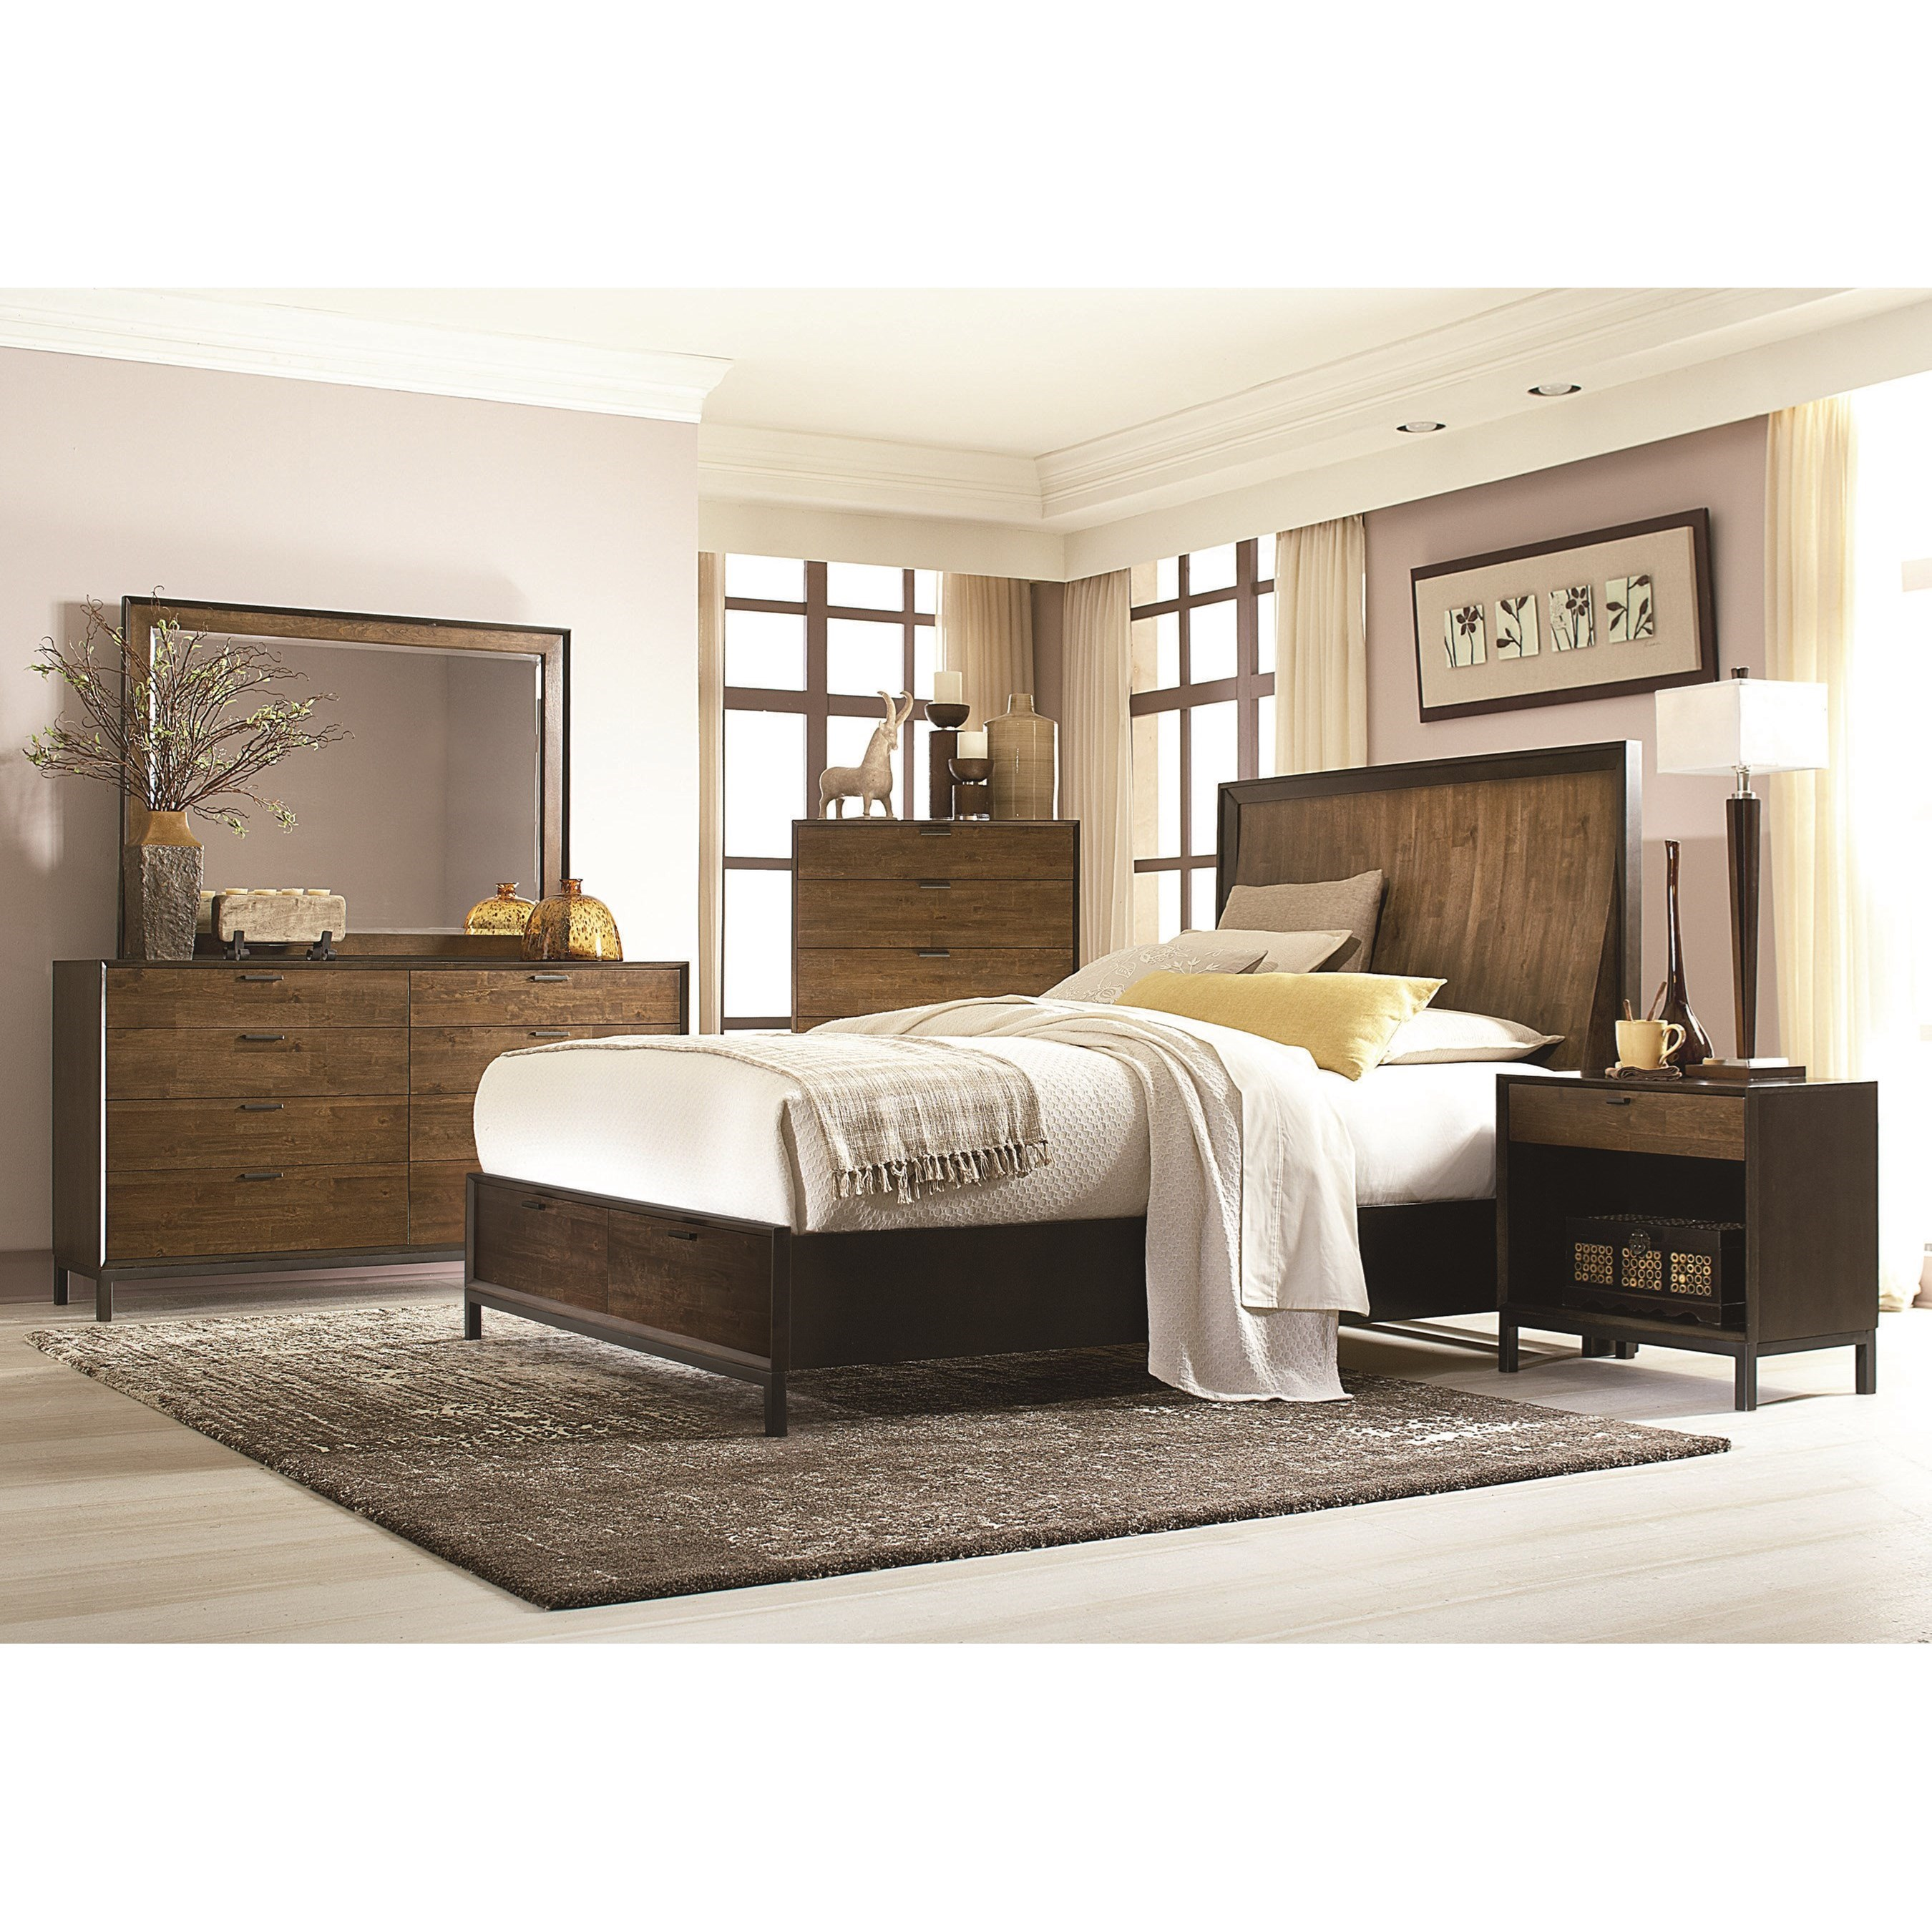 Legacy Classic Kateri Queen Panel Storage Bedroom Group - Item Number: 3600 Q Bedroom Group 4